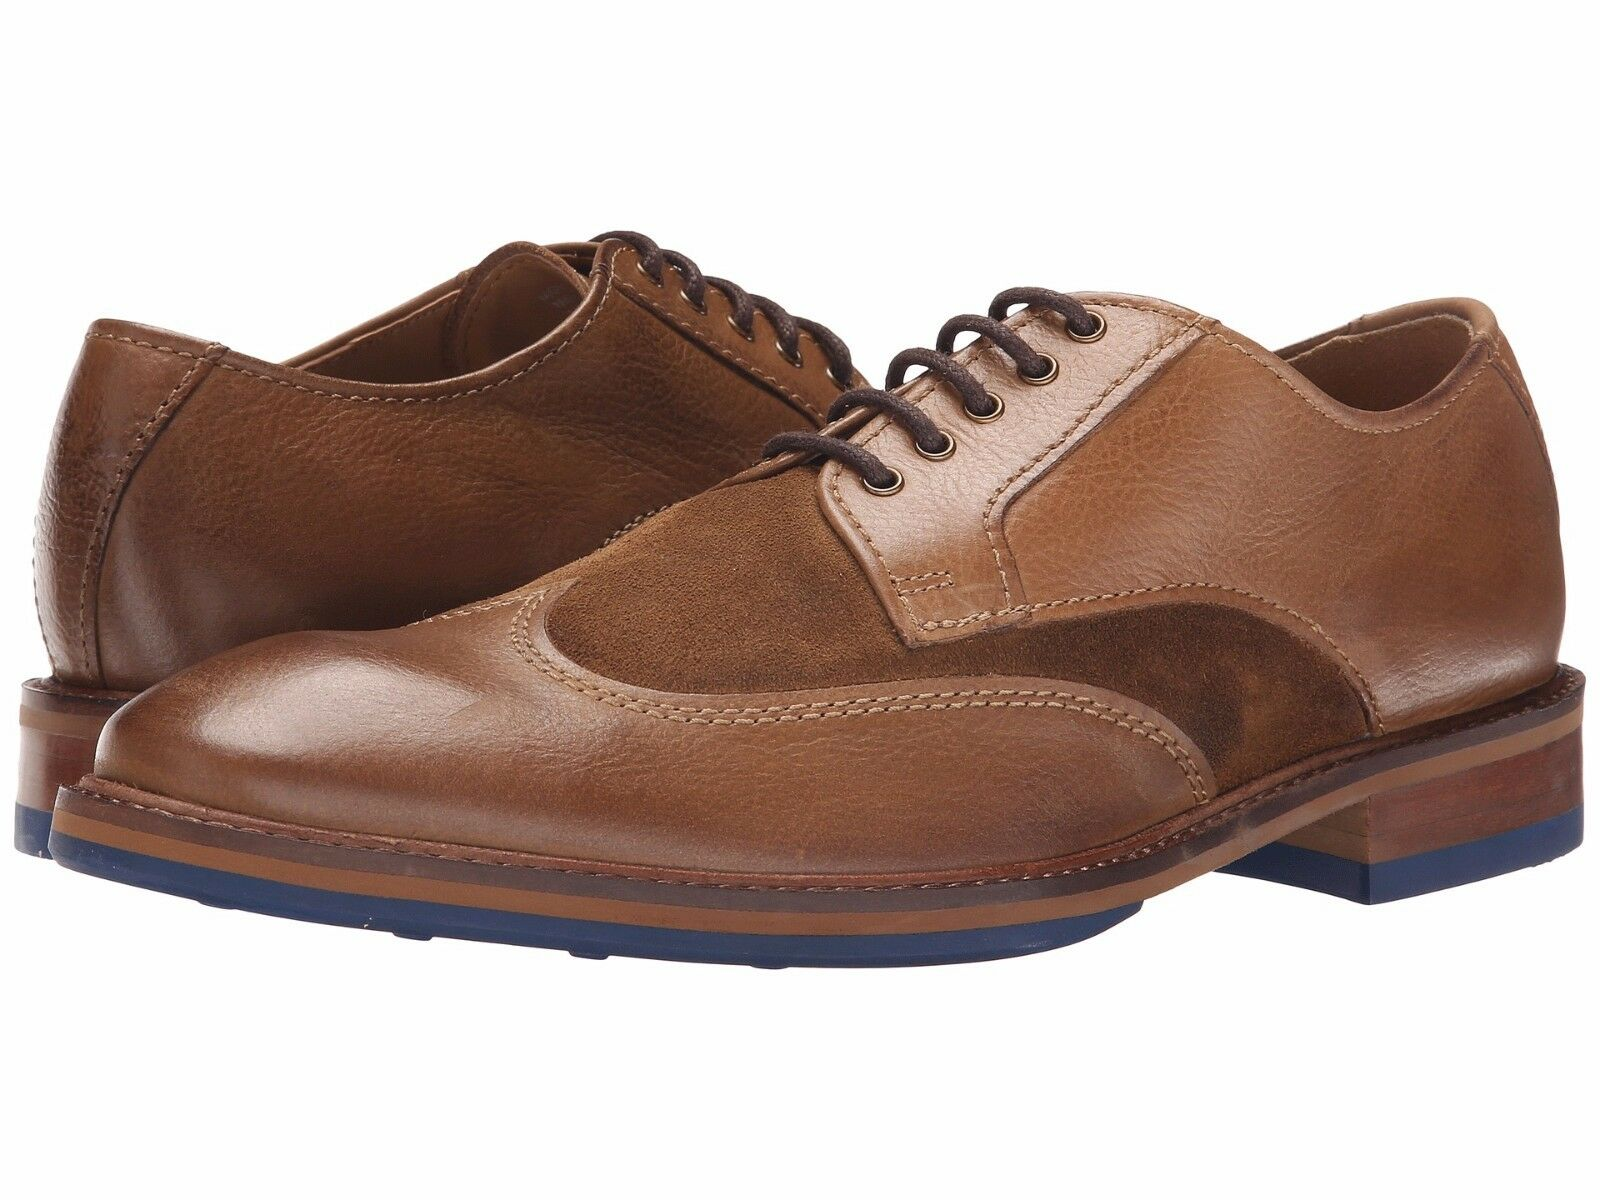 Men's shoes Kenneth Cole Move-Ment Suede Lace Up Oxford SMF5LE055 Brown New